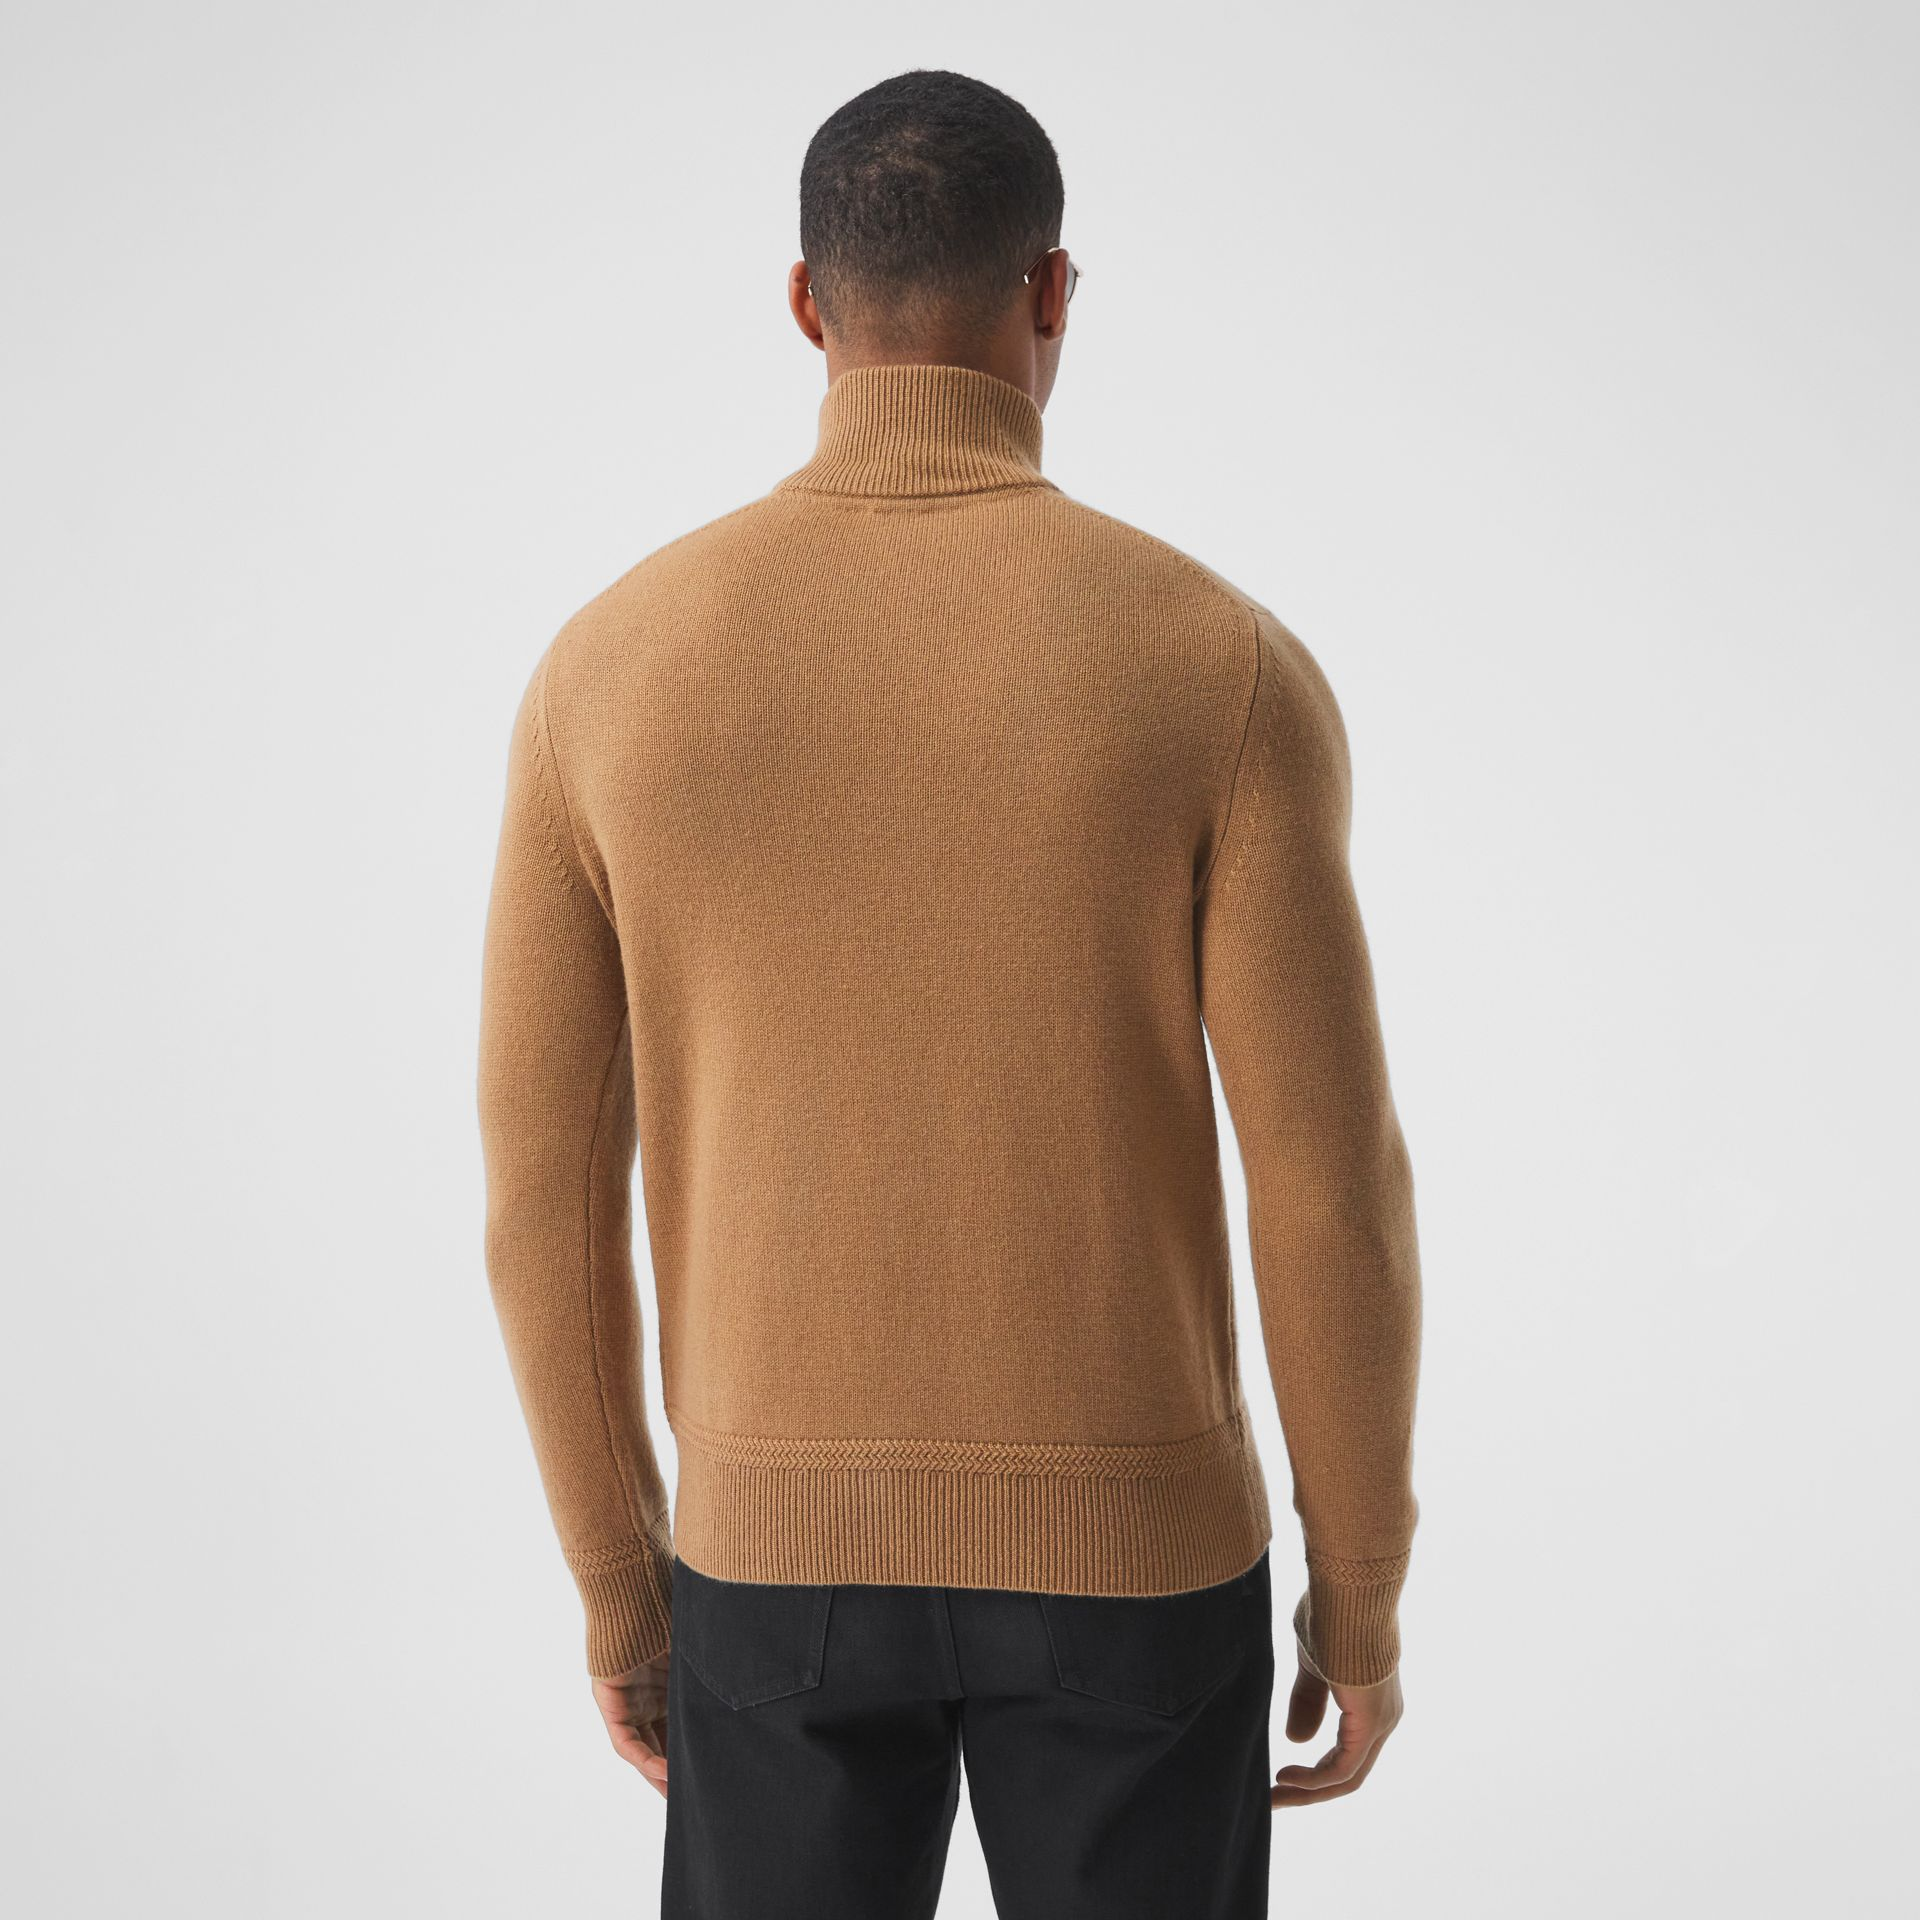 Monogram Motif Cashmere Funnel Neck Sweater in Camel - Men | Burberry - gallery image 2